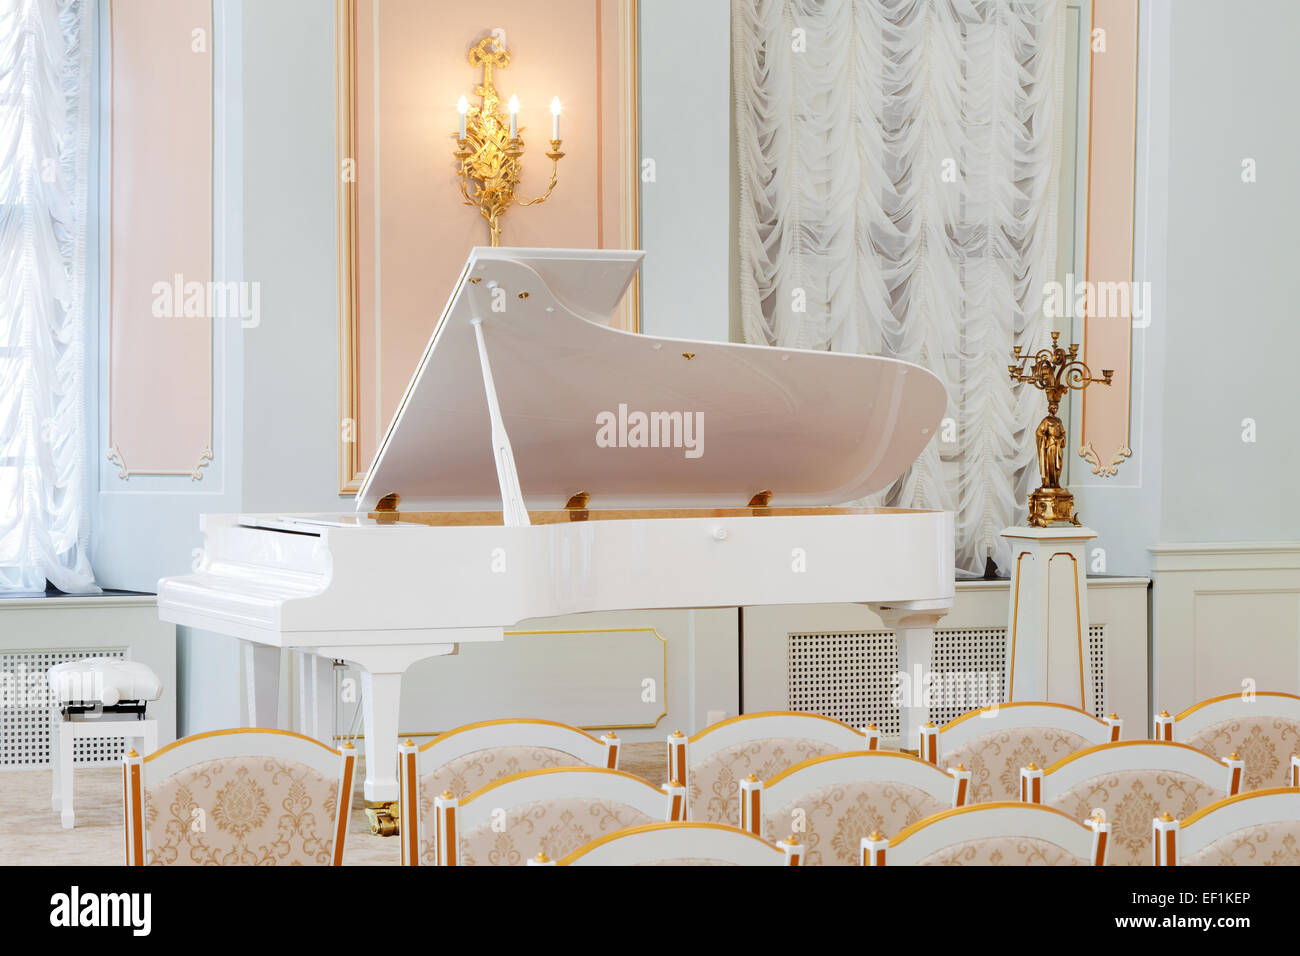 Grand Piano On Concert Stage Stock Photos & Grand Piano On Concert ...